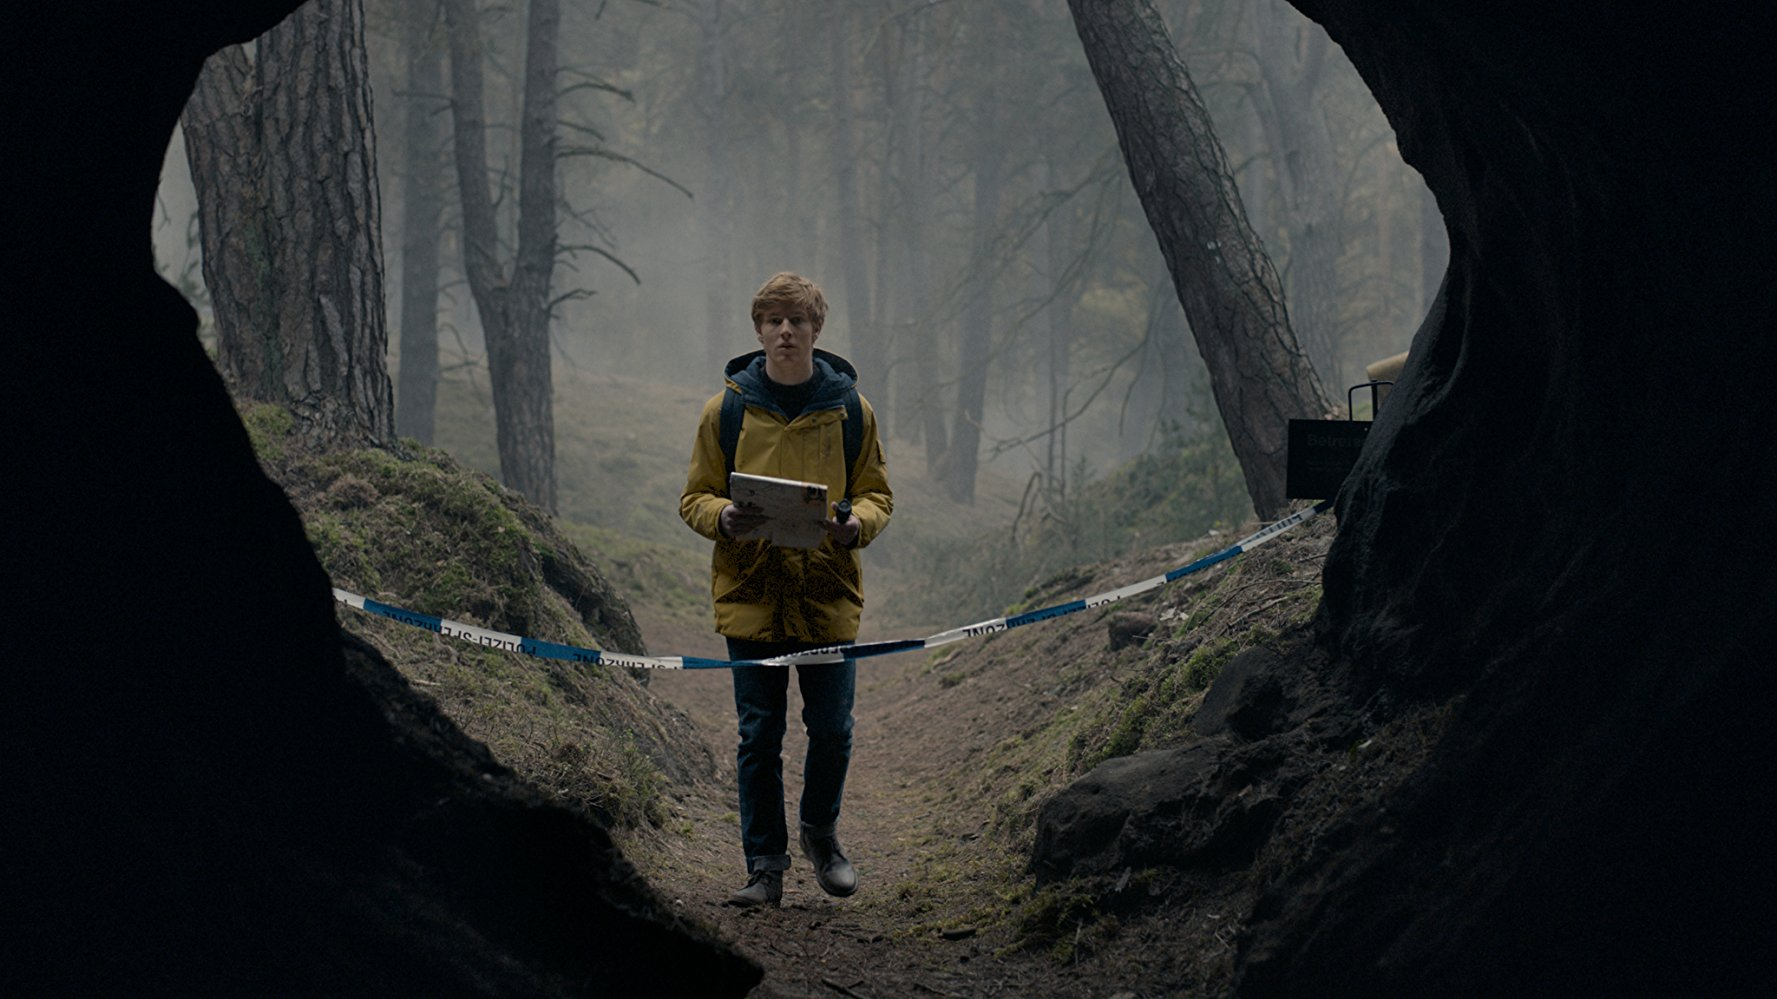 A teenaged boy standing in front of a cave that is blocked by police tape. He appears to be in a foggy forest.